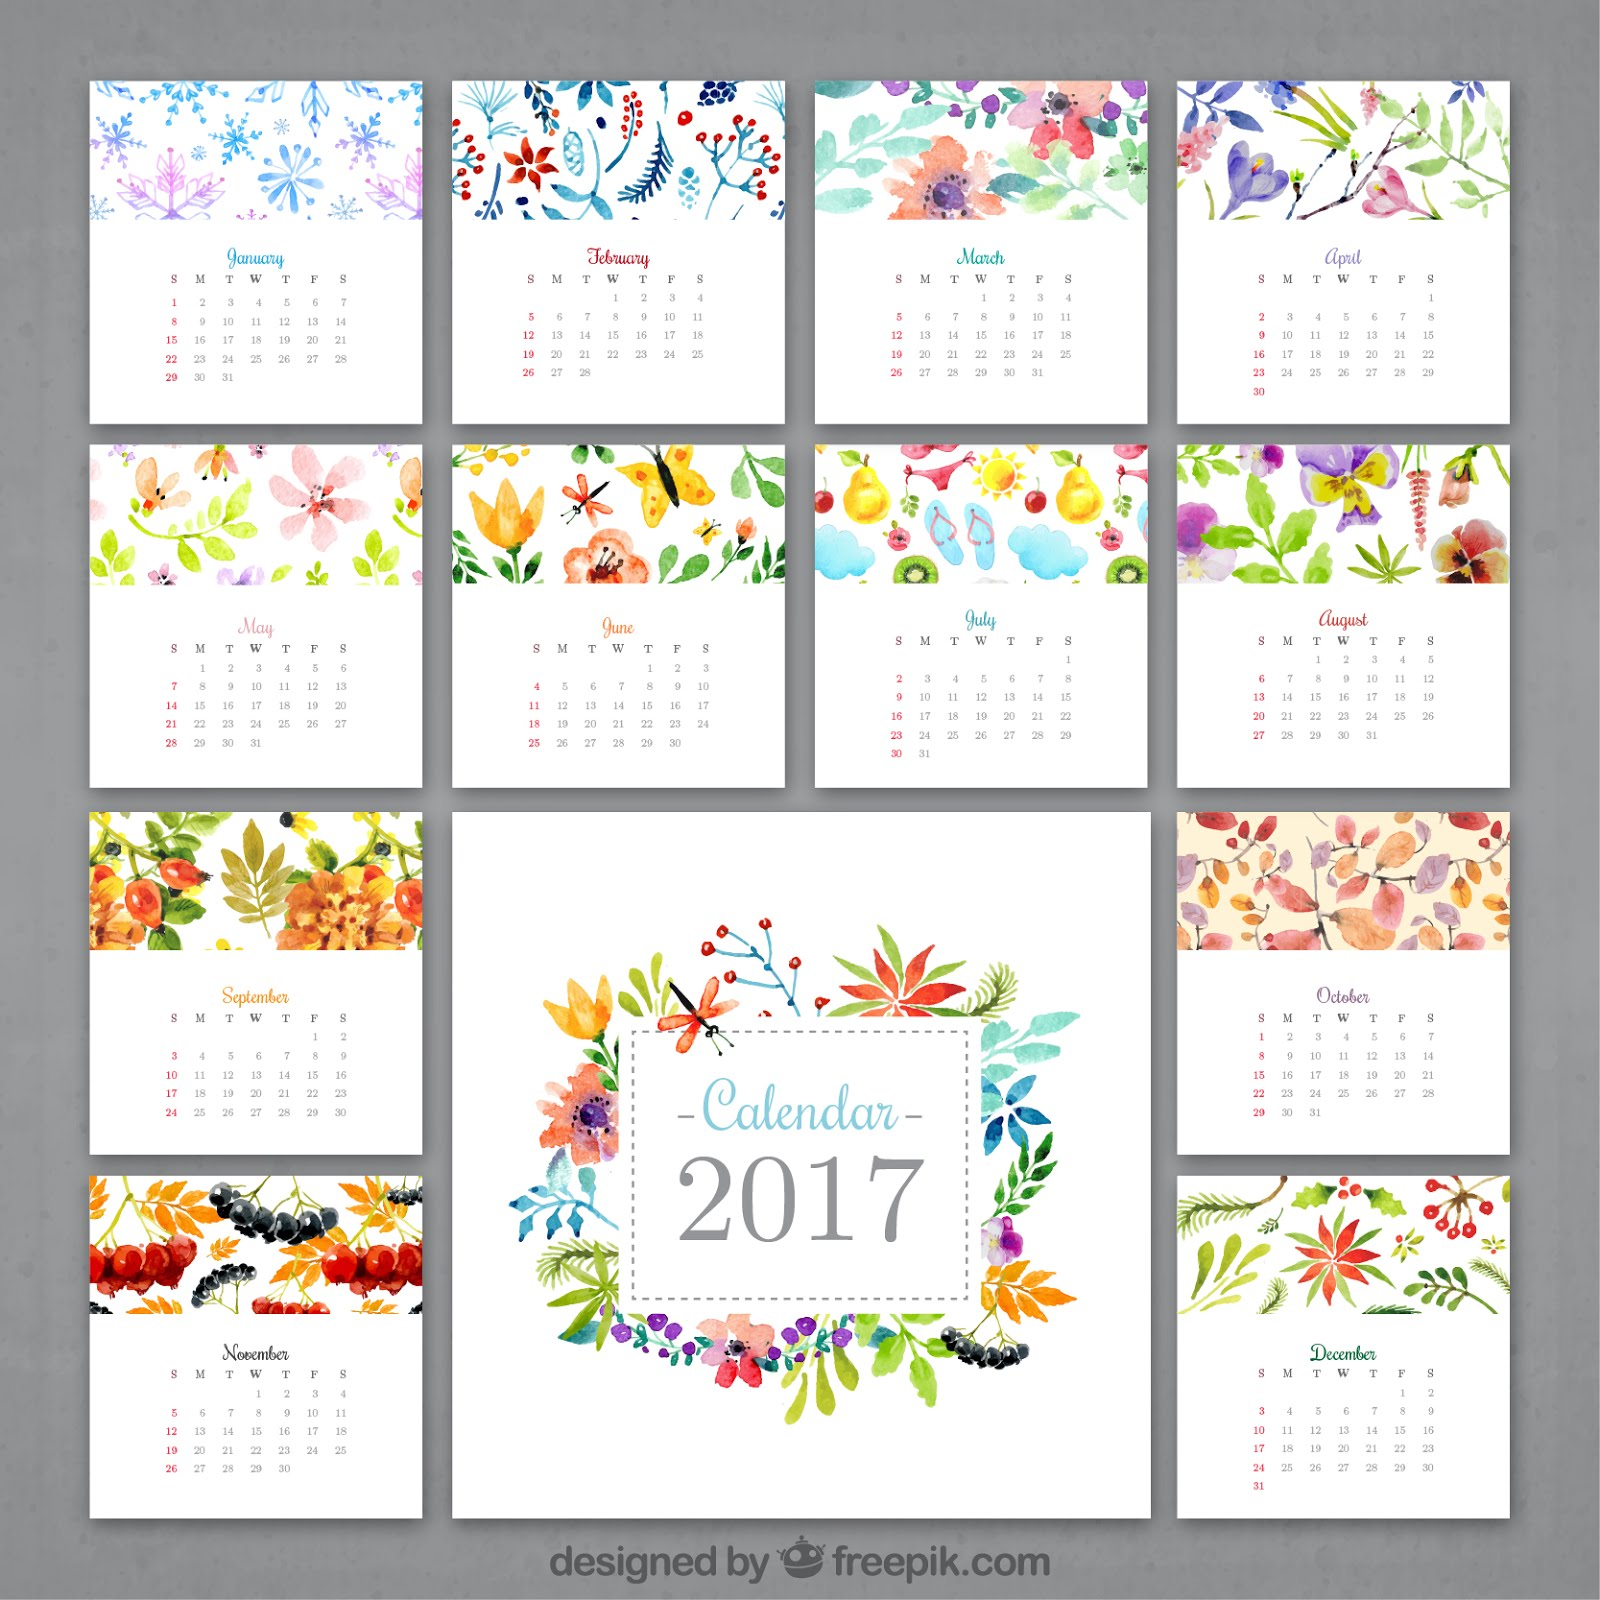 Calendar Design Baby : Calendar vector free download new template